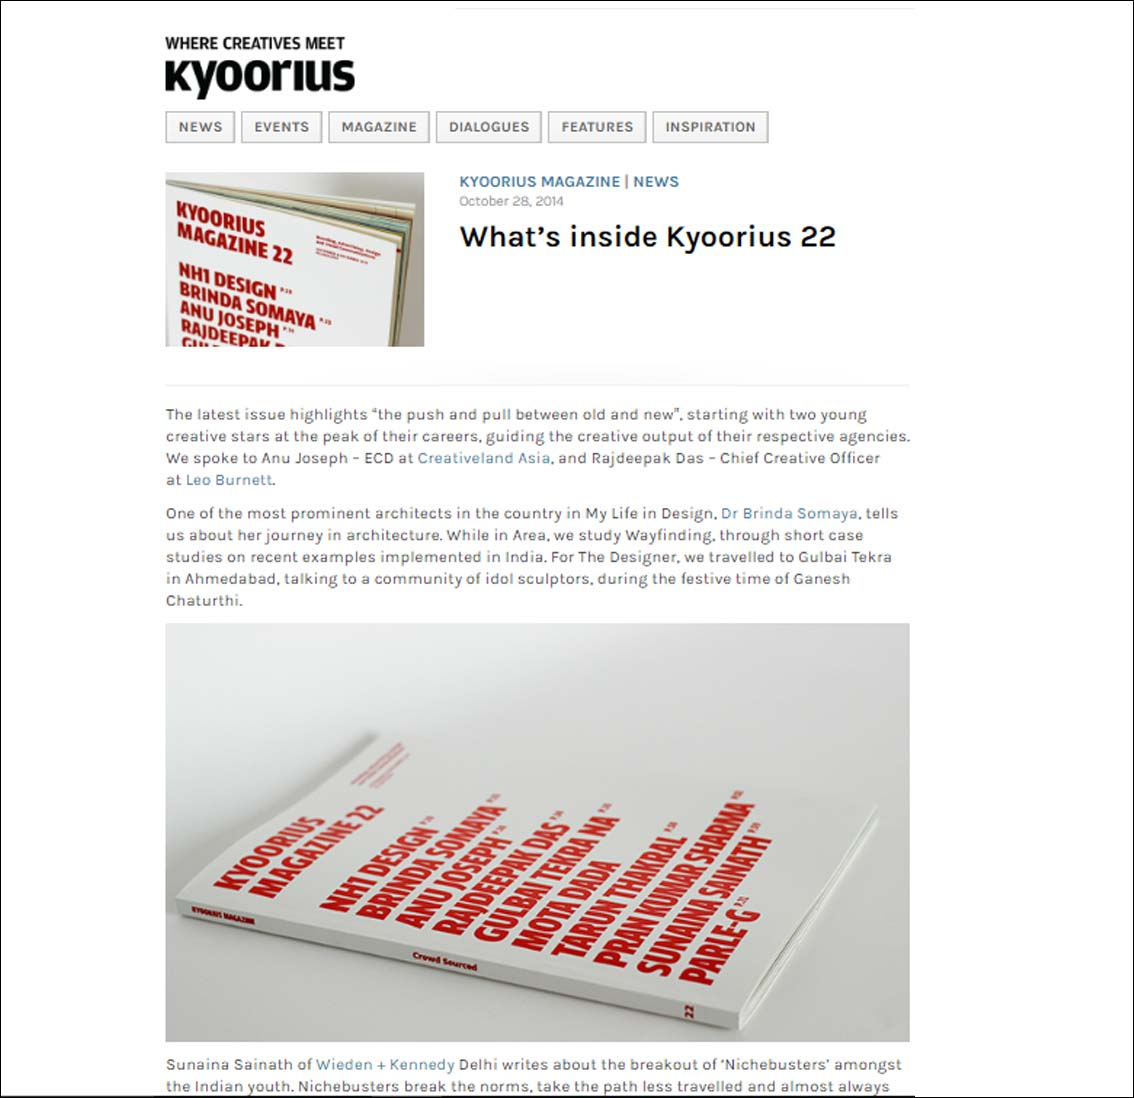 Where Creatives meet Kyoorius - October 2014